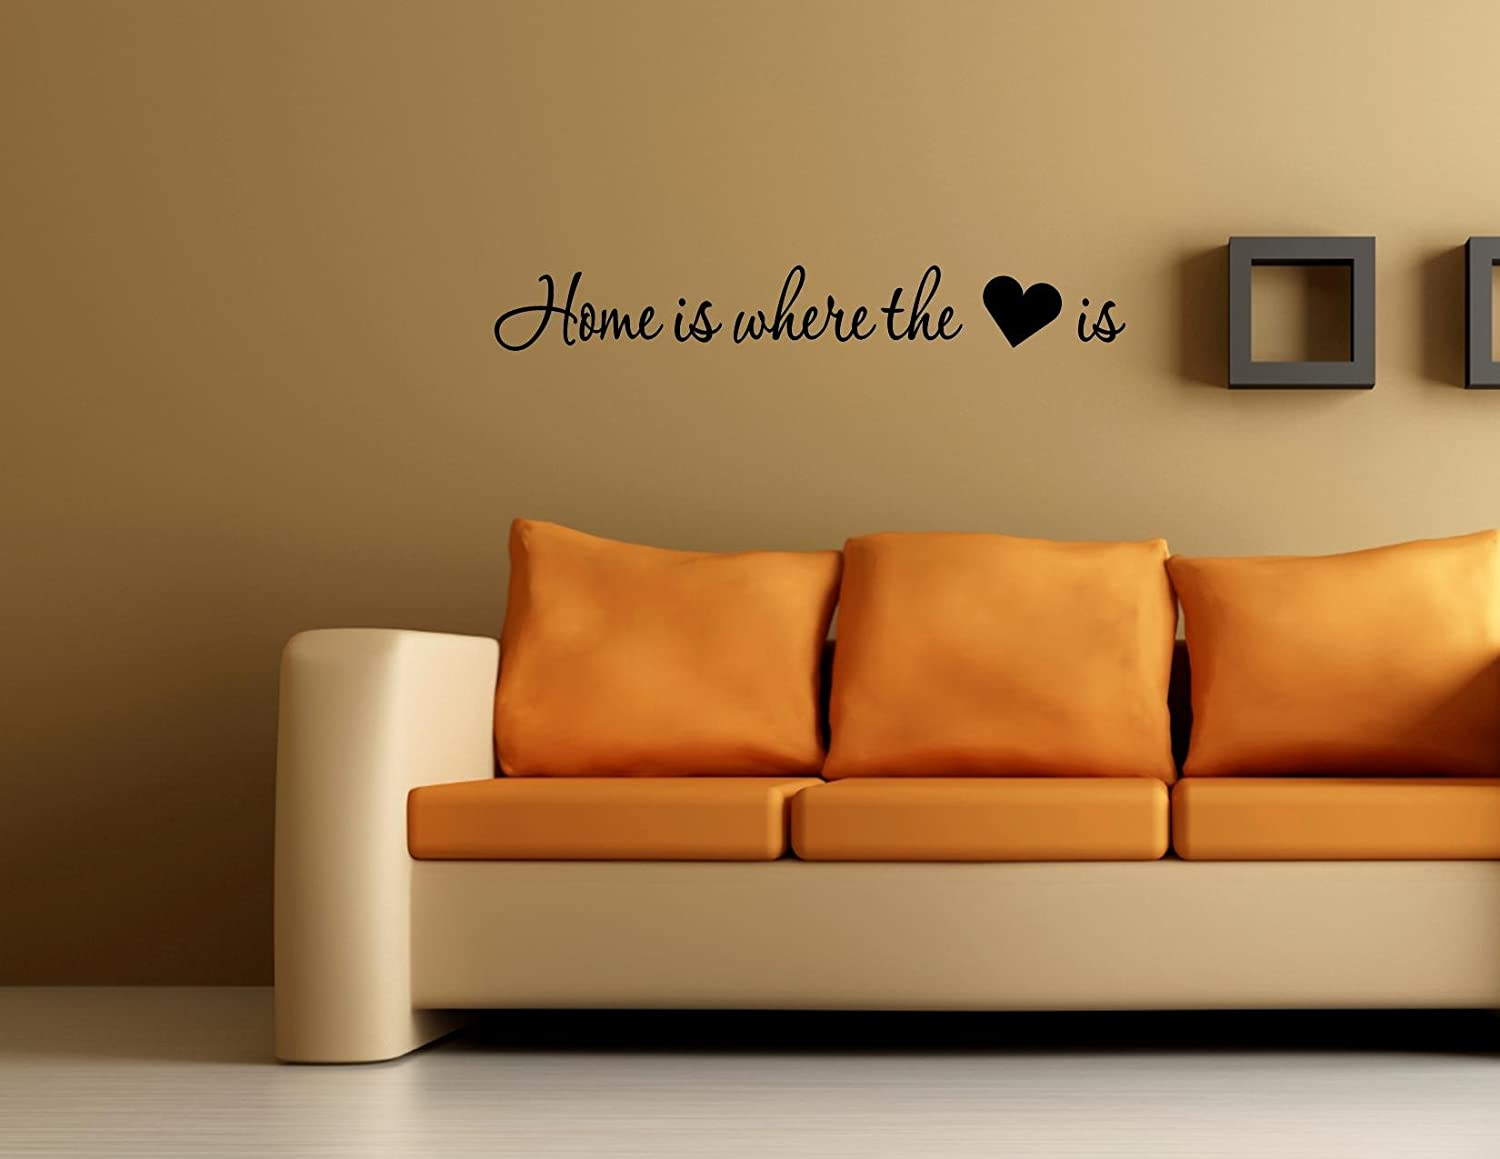 Amazon Home Is Where The Heart Is 0379 Vinyl Wall Decals